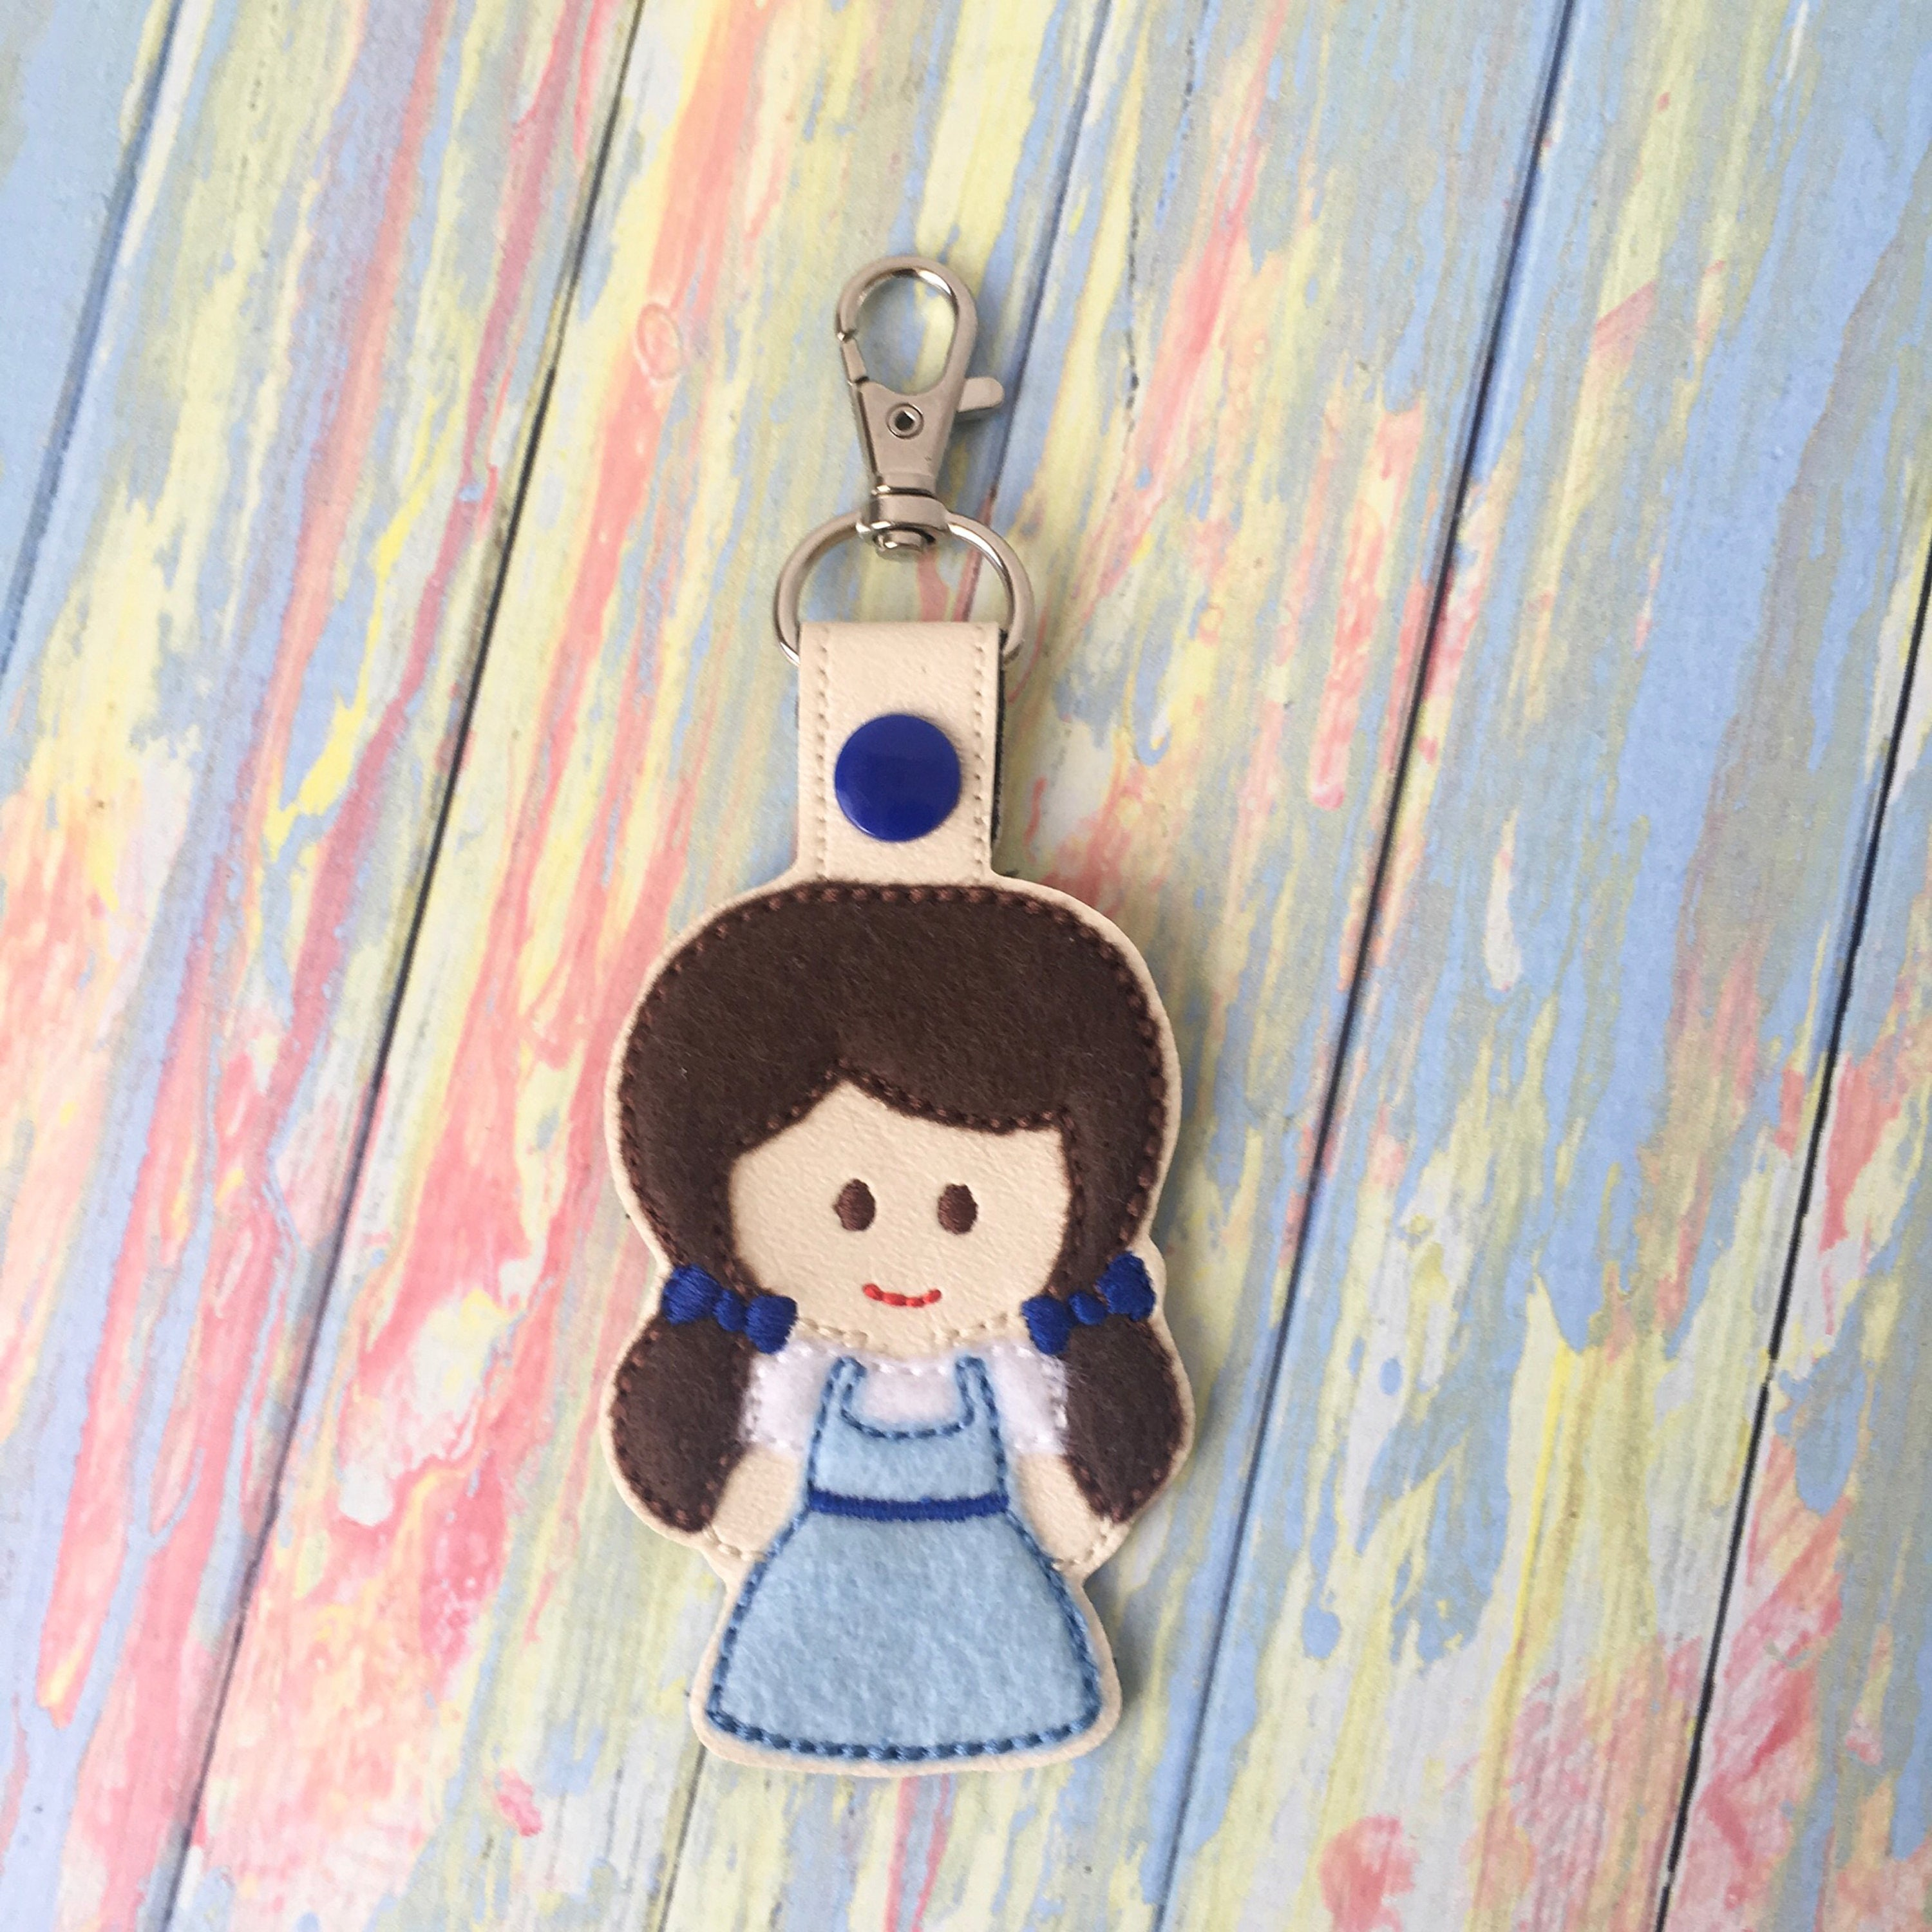 dorothy keychain wizard of oz gift party favor christmas stocking stuffer